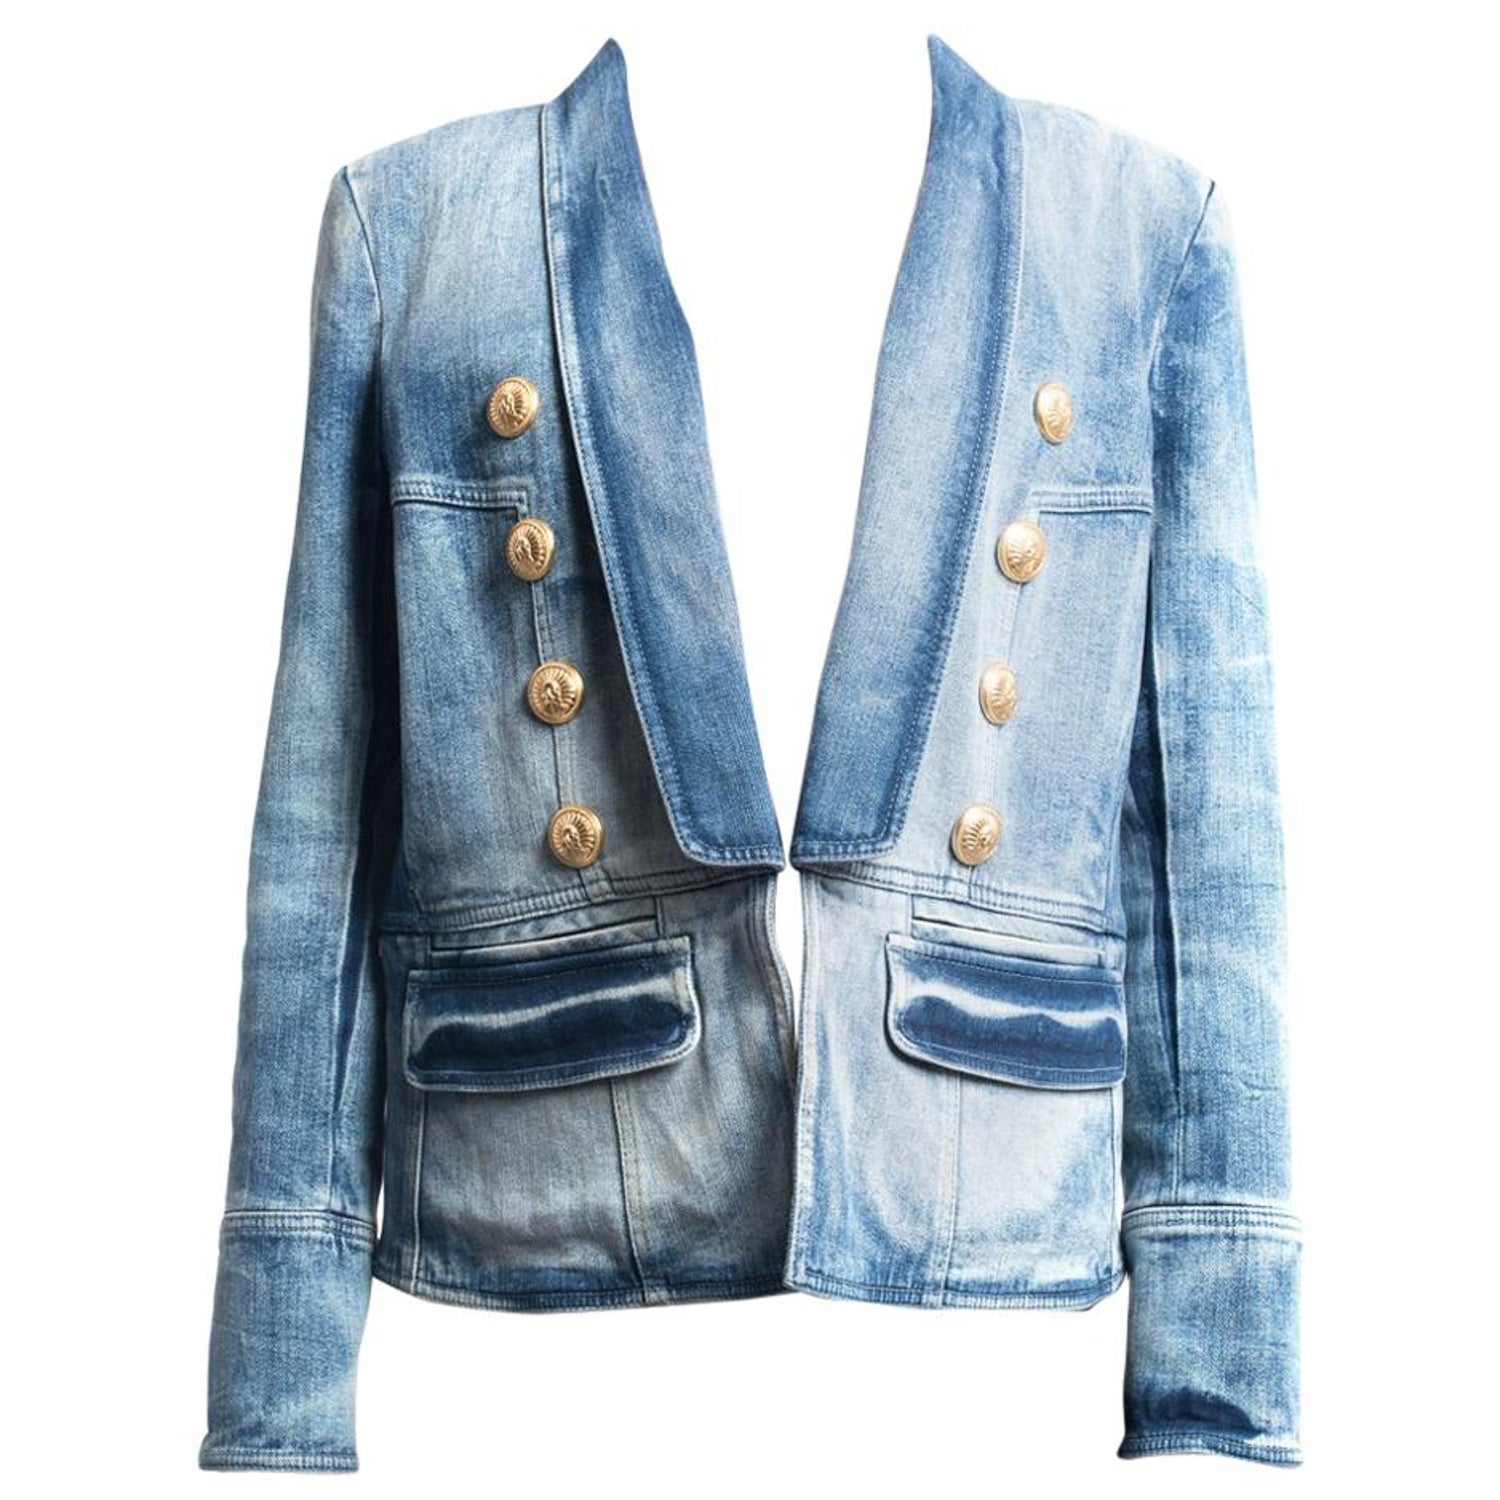 e1c47d46 Balmain Denim Jacket with Gold Military Buttons - L / 12 at 1stdibs